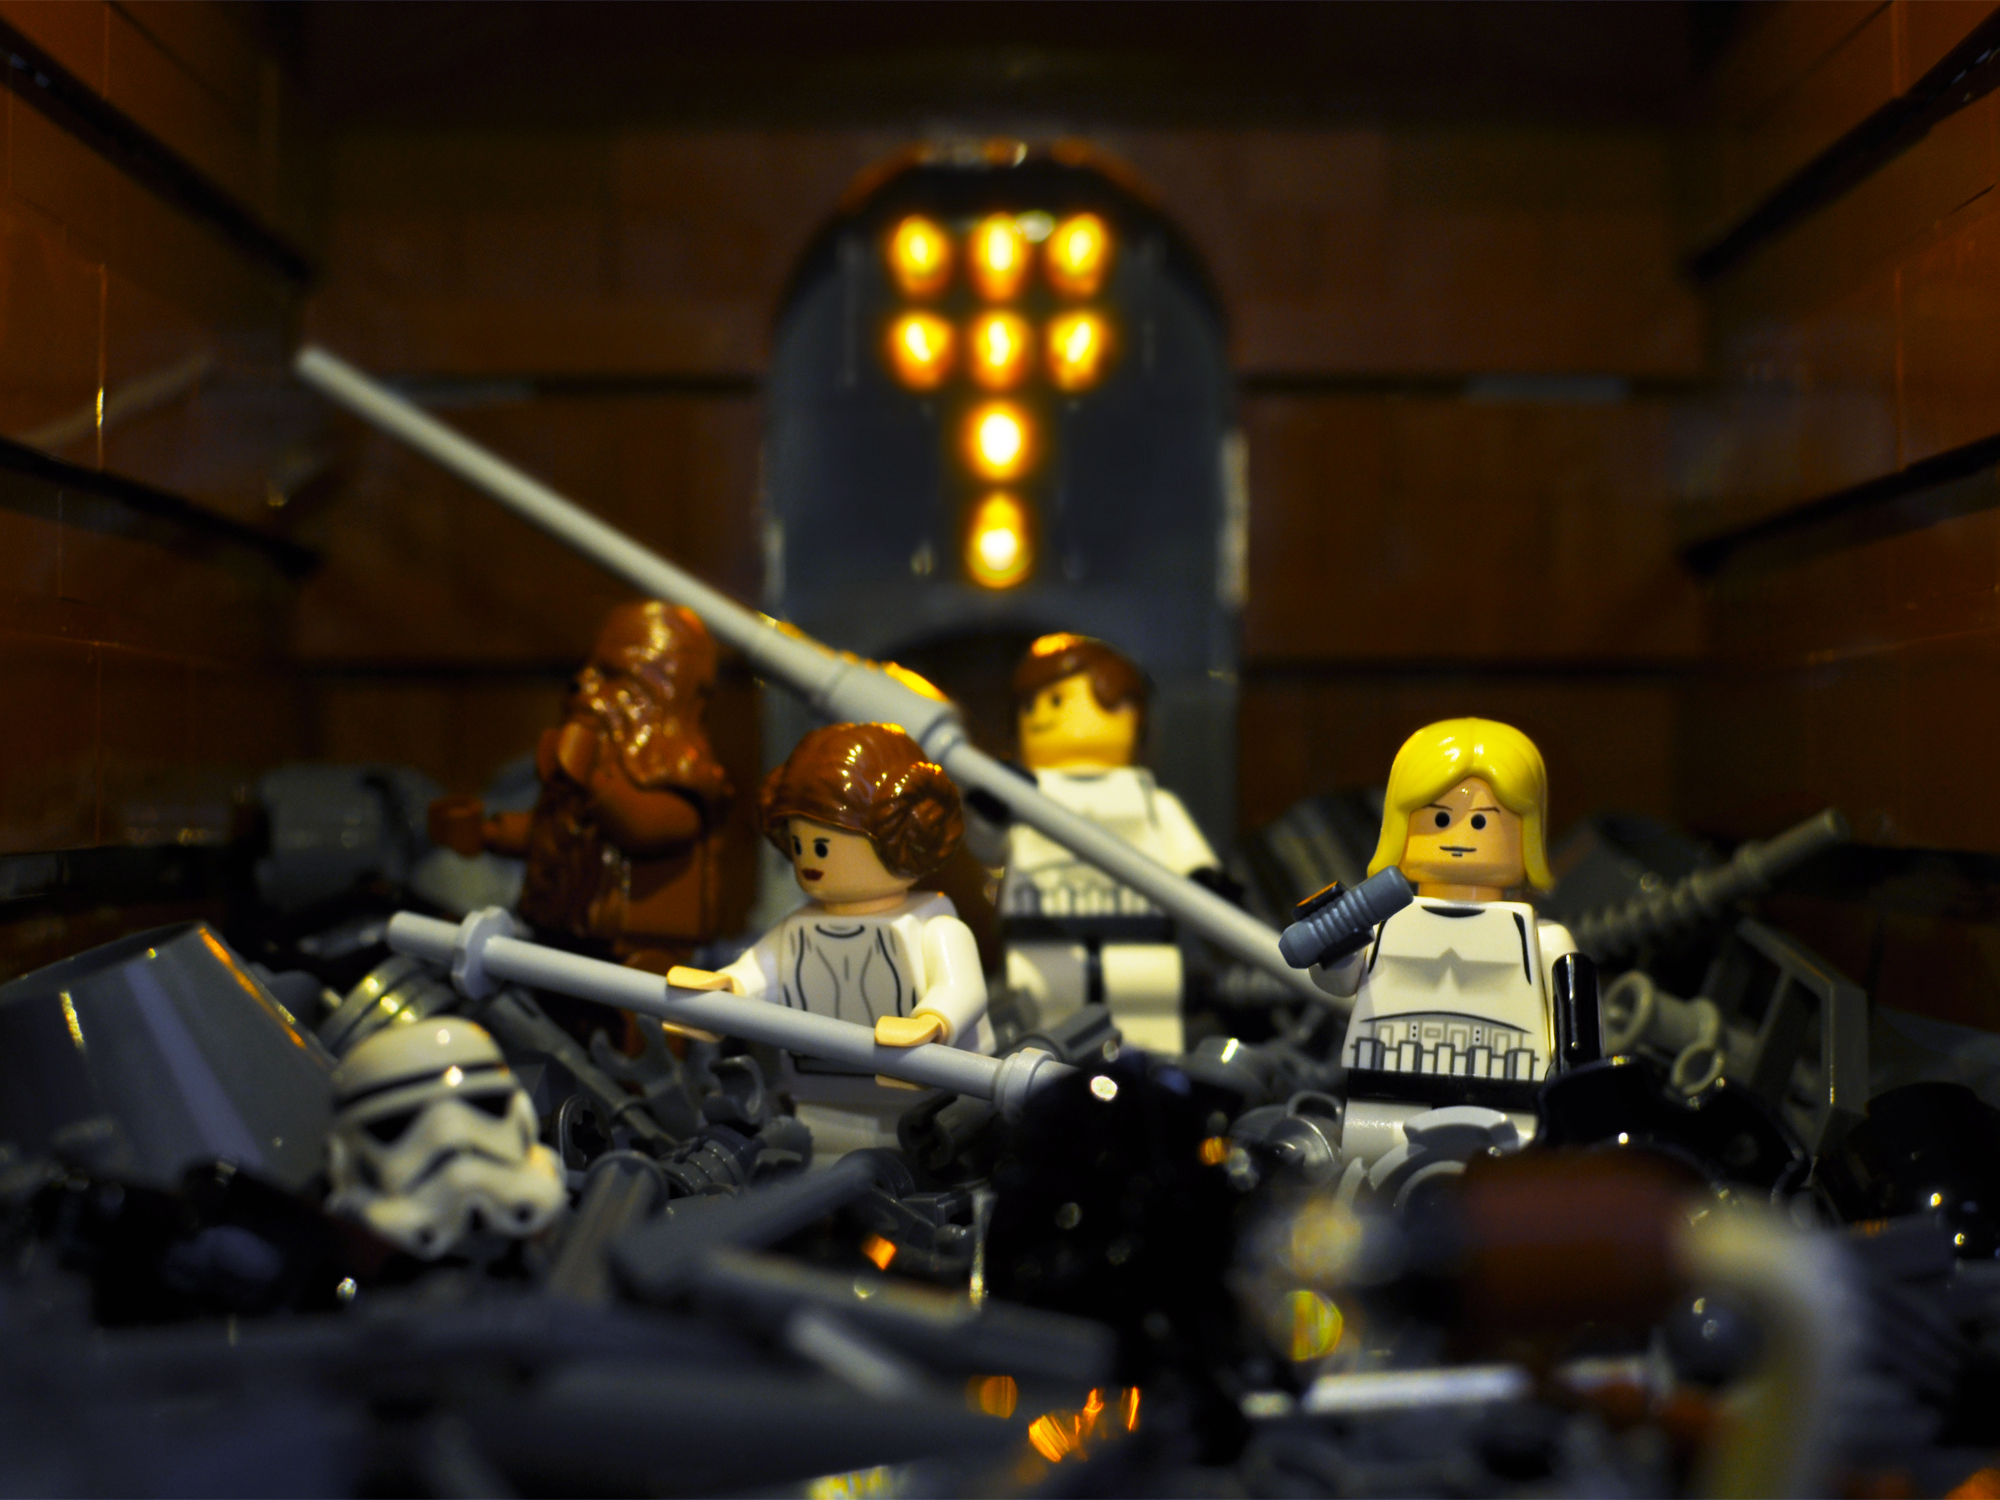 A look at the Lego Star Wars minifigures from 2008.